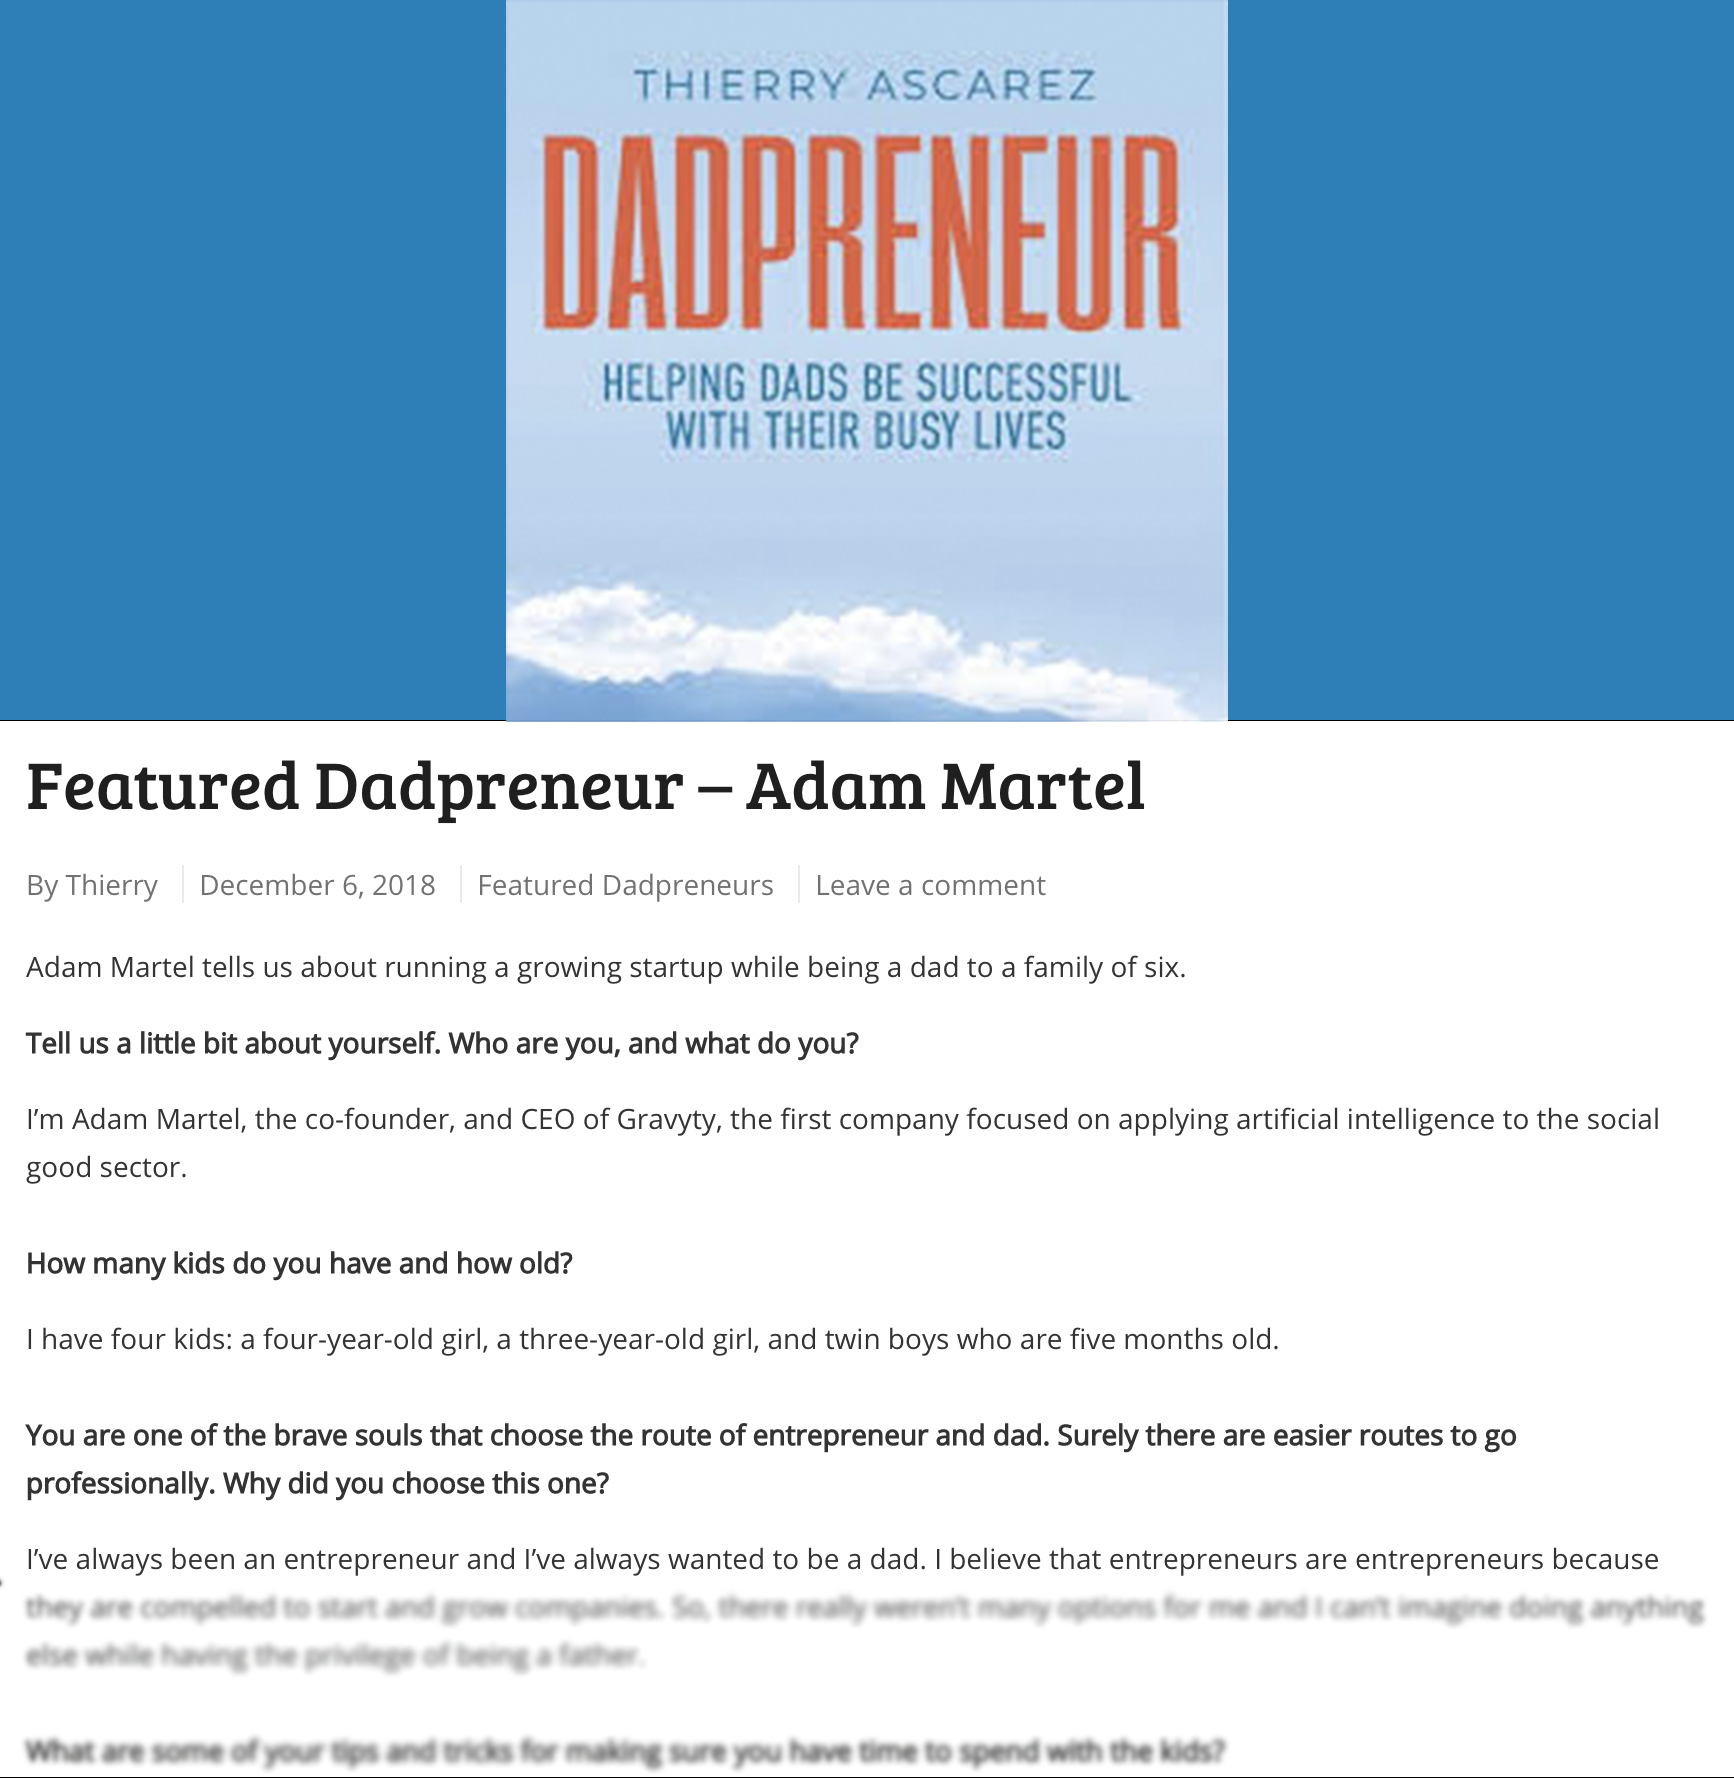 Adam Martel, Featured Dadpreneur